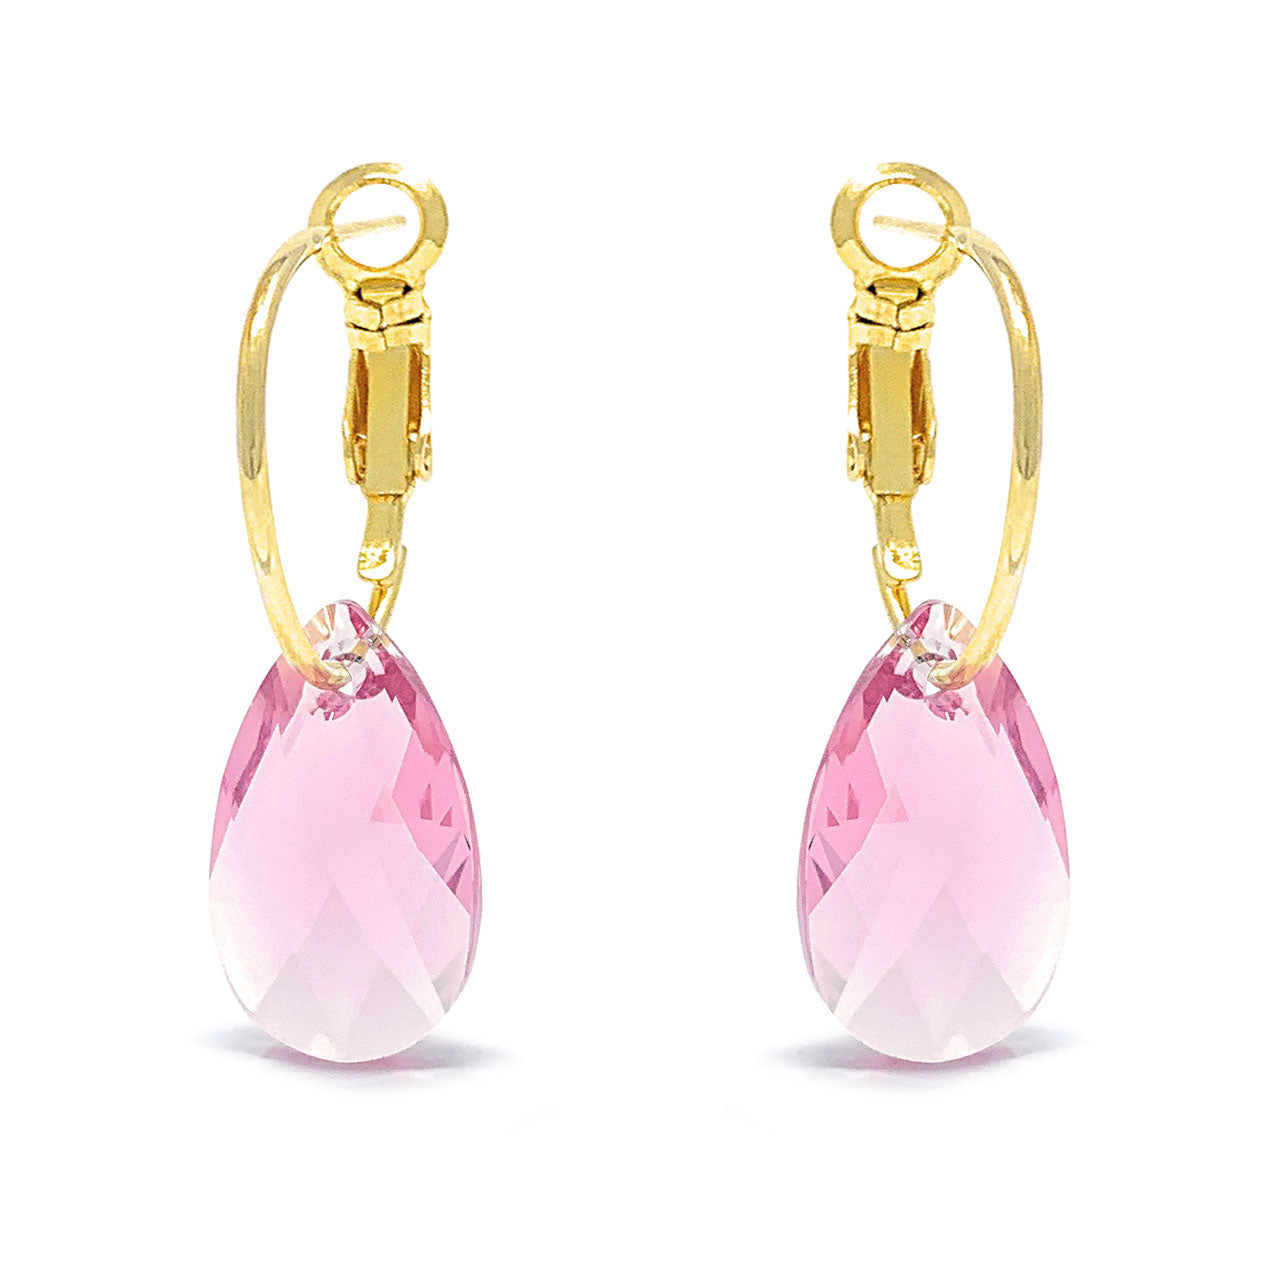 Aurora Small Drop Earrings with Pink Light Rose Pear Crystals from Swarovski Gold Plated - Ed Heart